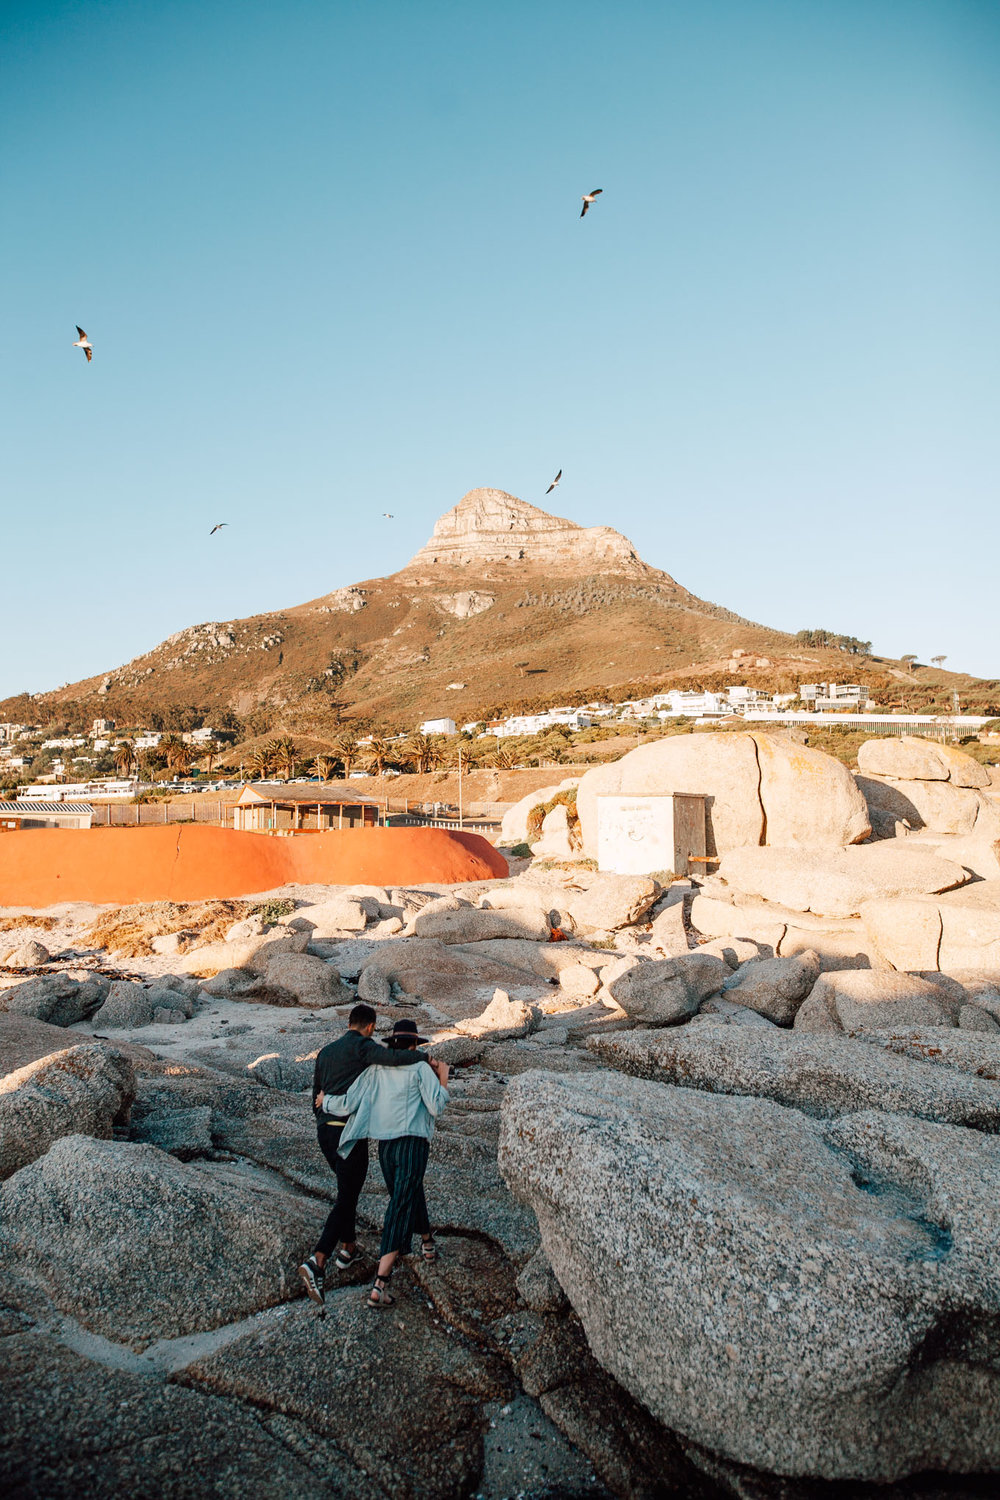 Cape-Town-Pia-Anna-Christian-Wedding-Photography-South-Africa-CJ-24.jpg